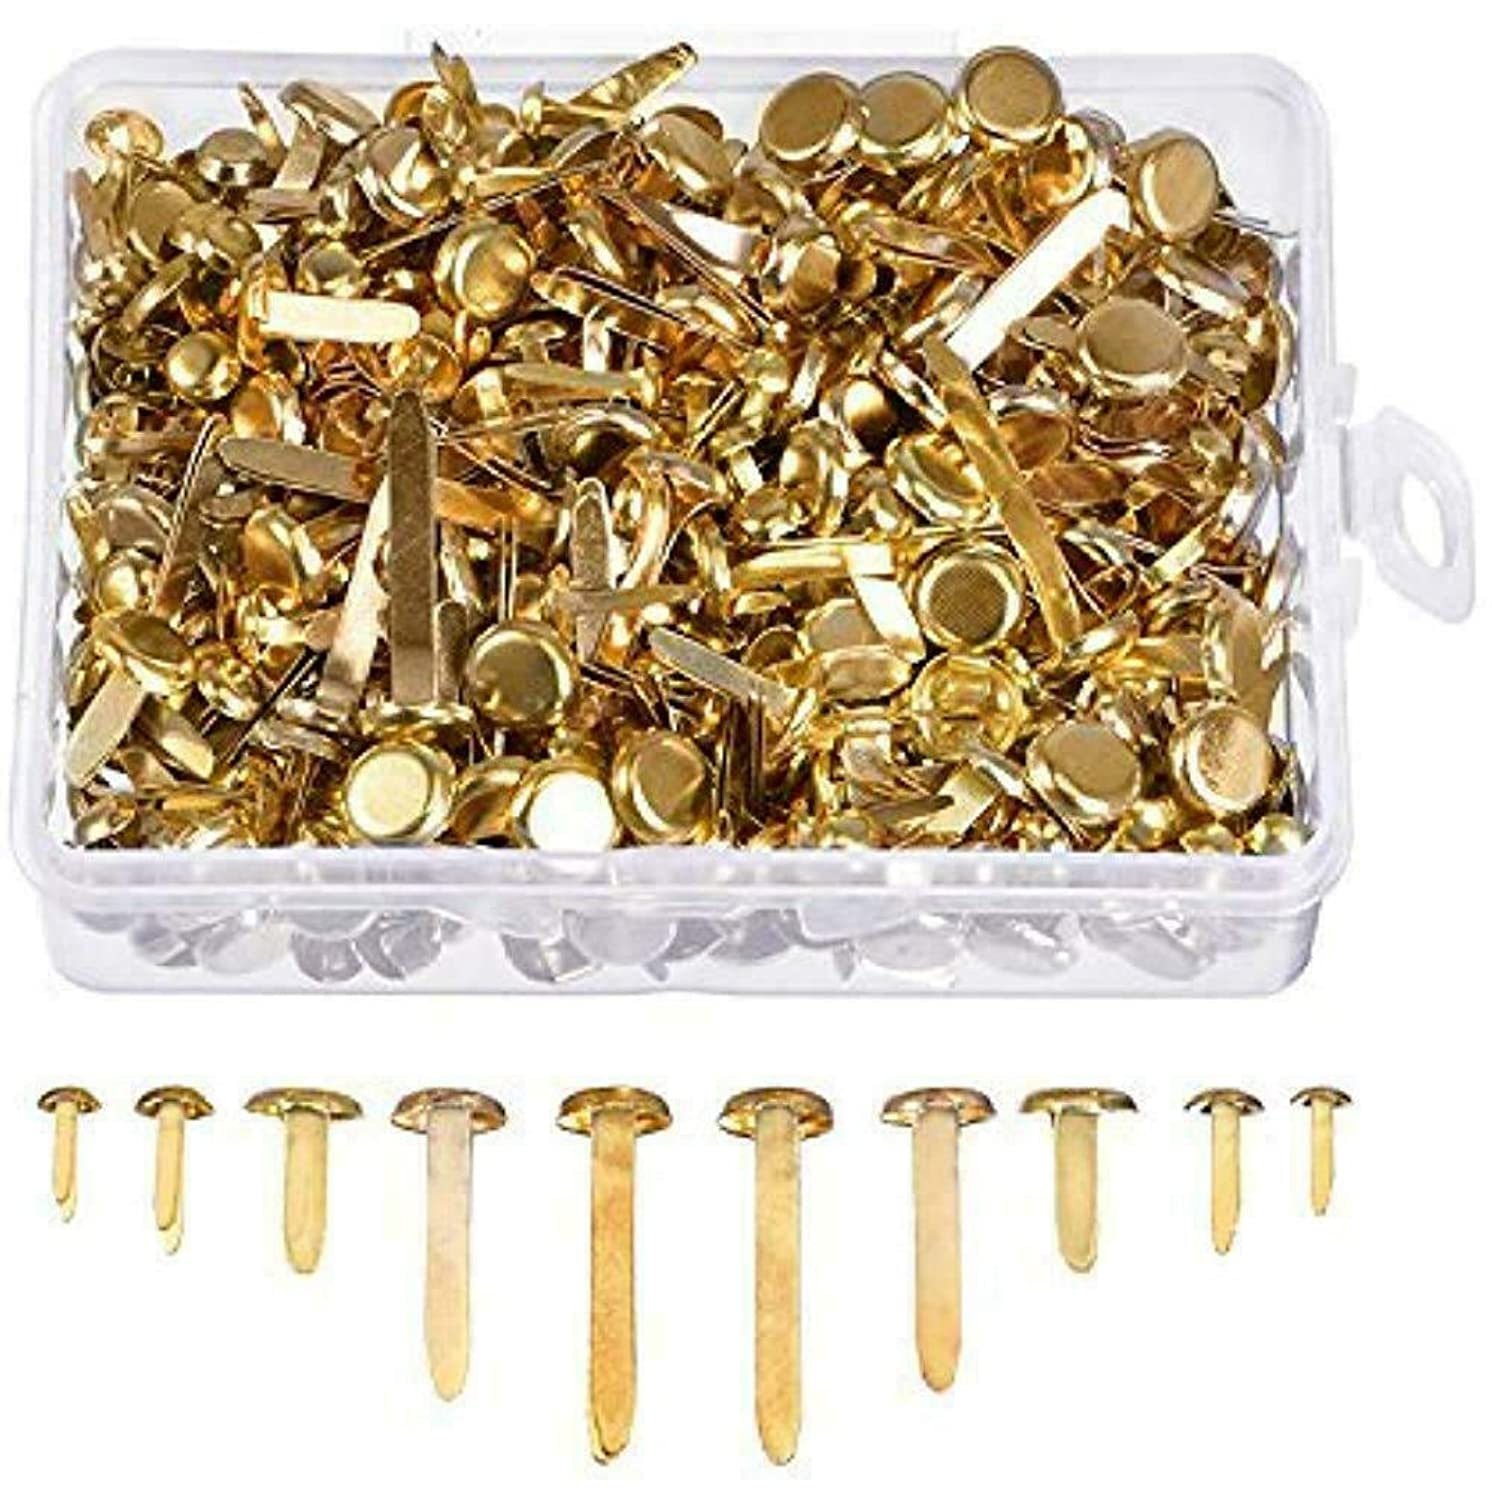 500 Pieces Brass Plated Paper Fasteners Round Metal Brads with Storage Box Size